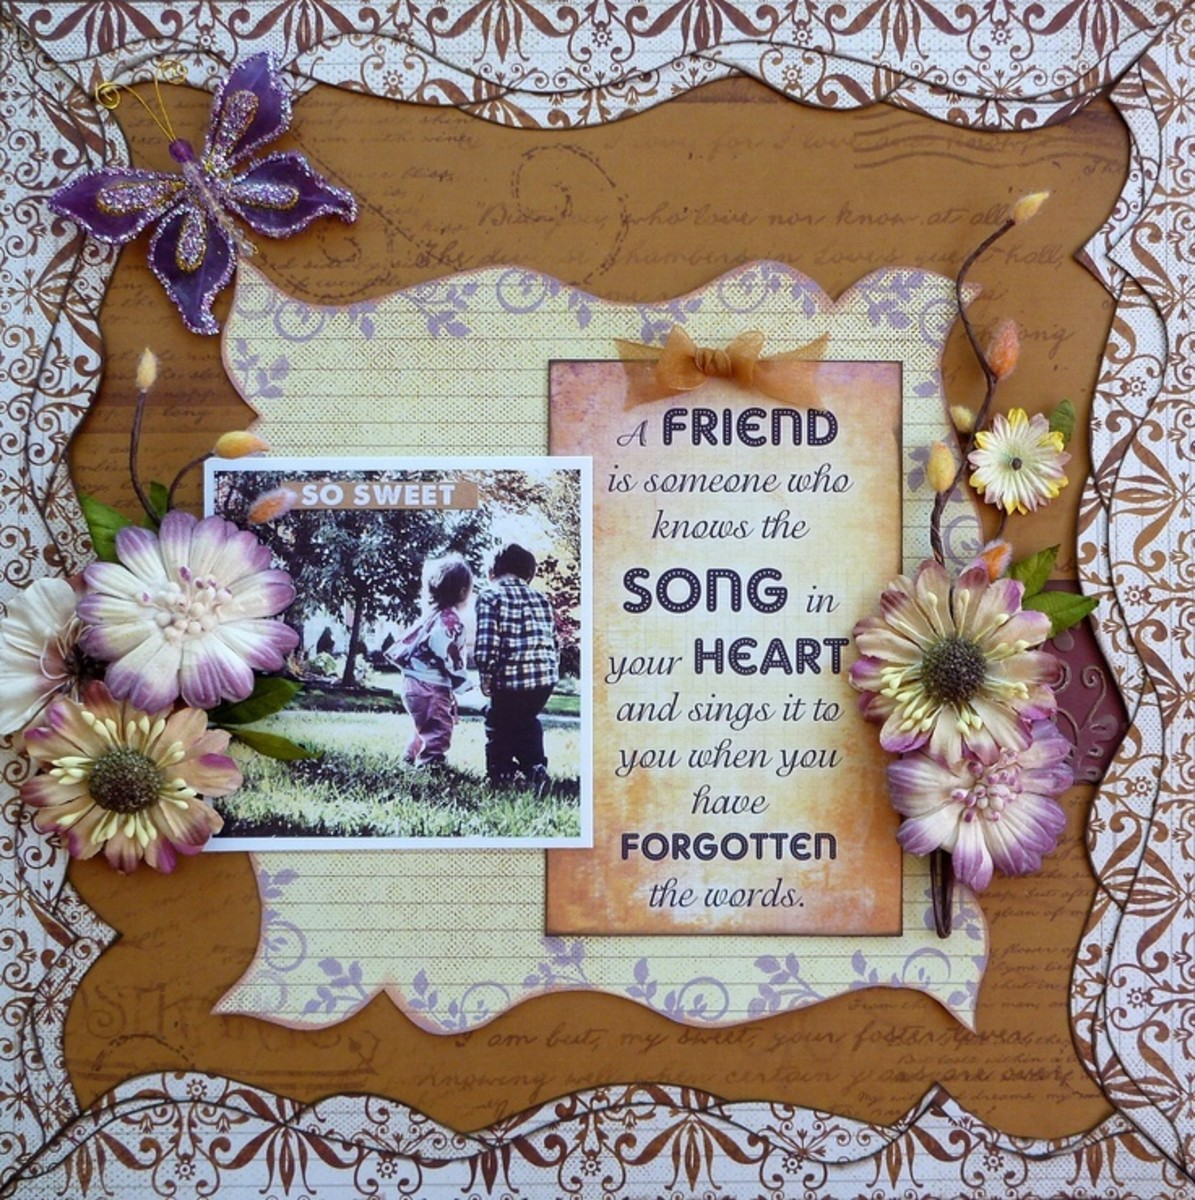 Scrapbook Quotes: Where to Find Them